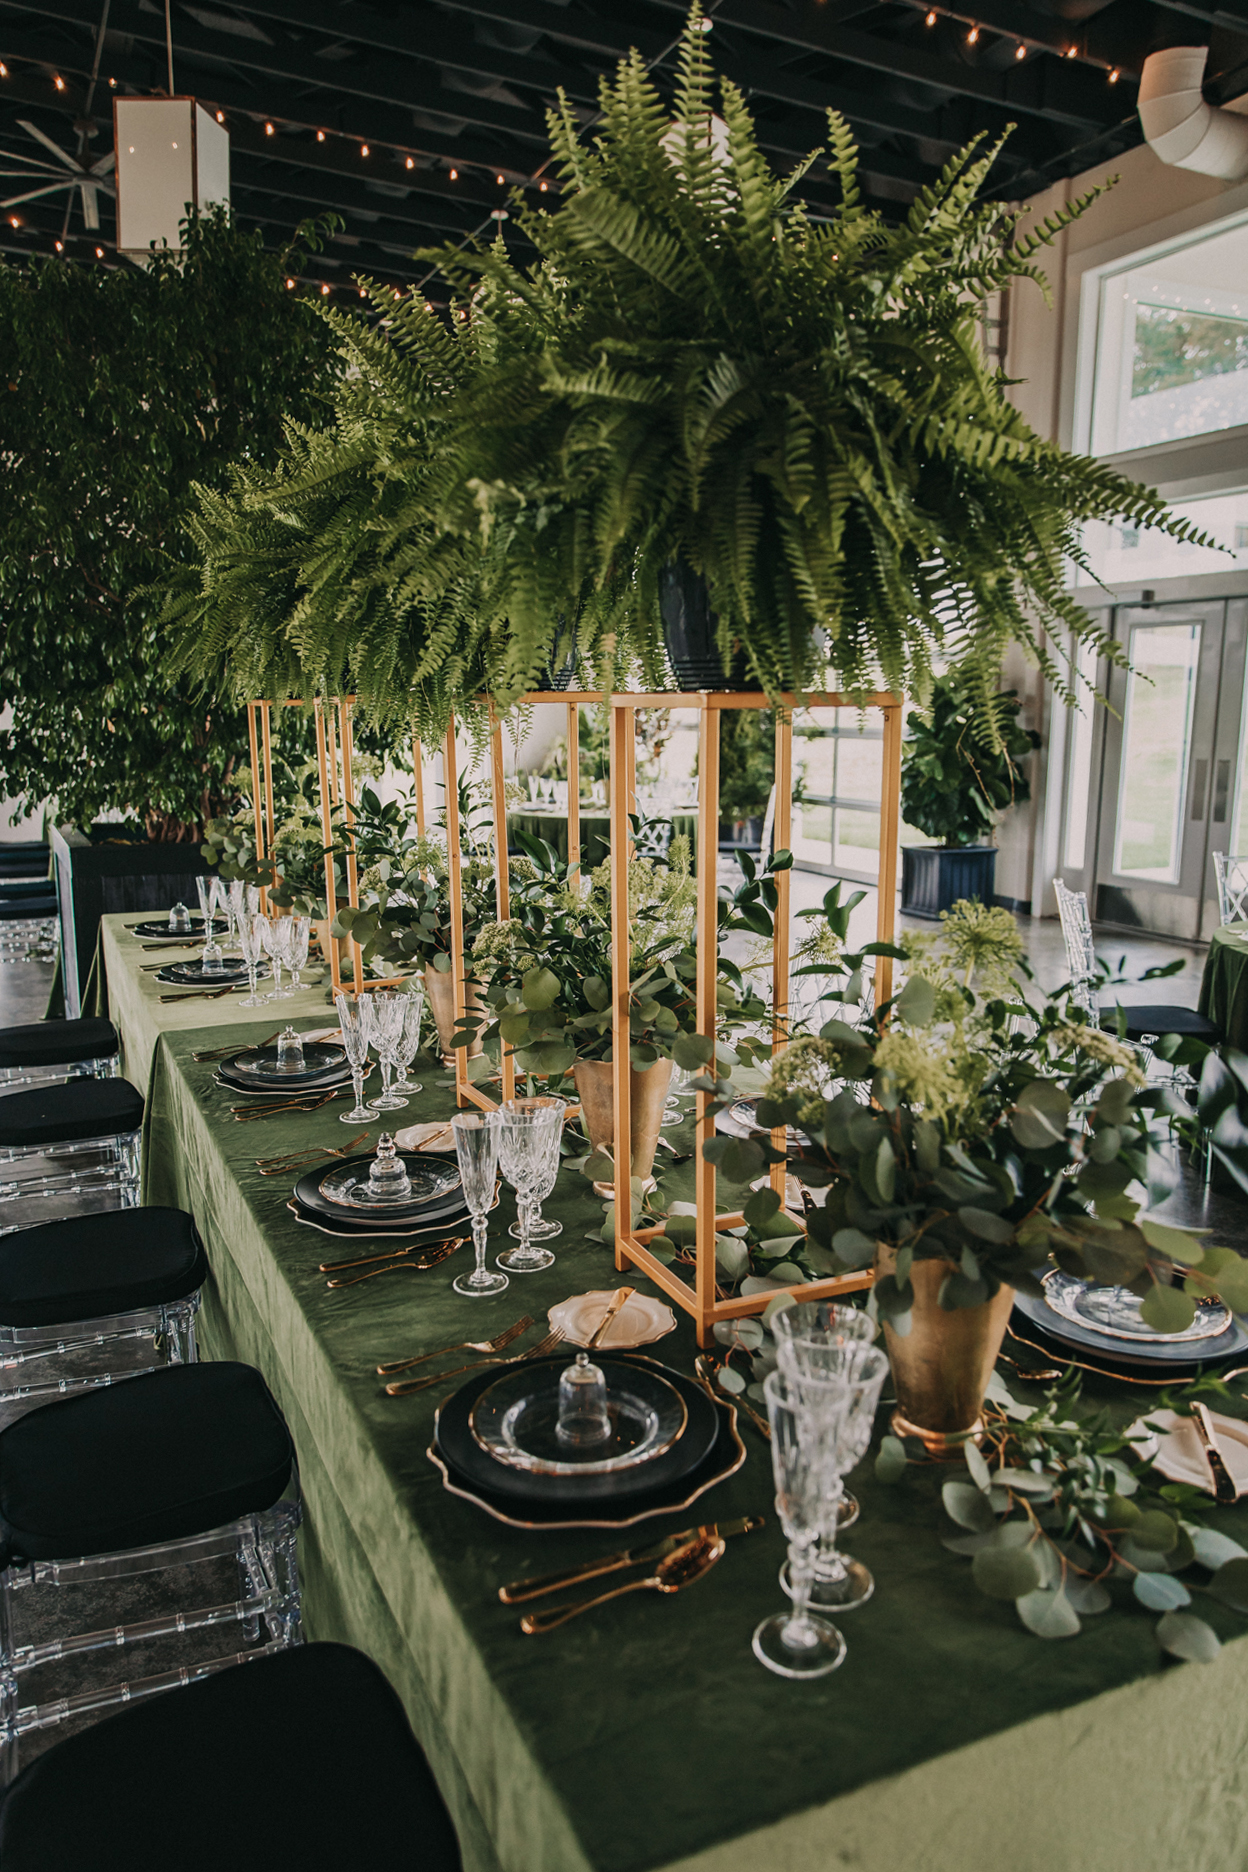 Tall greenery wedding centerpieces: Shades of Green Legacy Styled Shoot by Music City Events and Billie-Shaye Style featured on Nashville Bride Guide